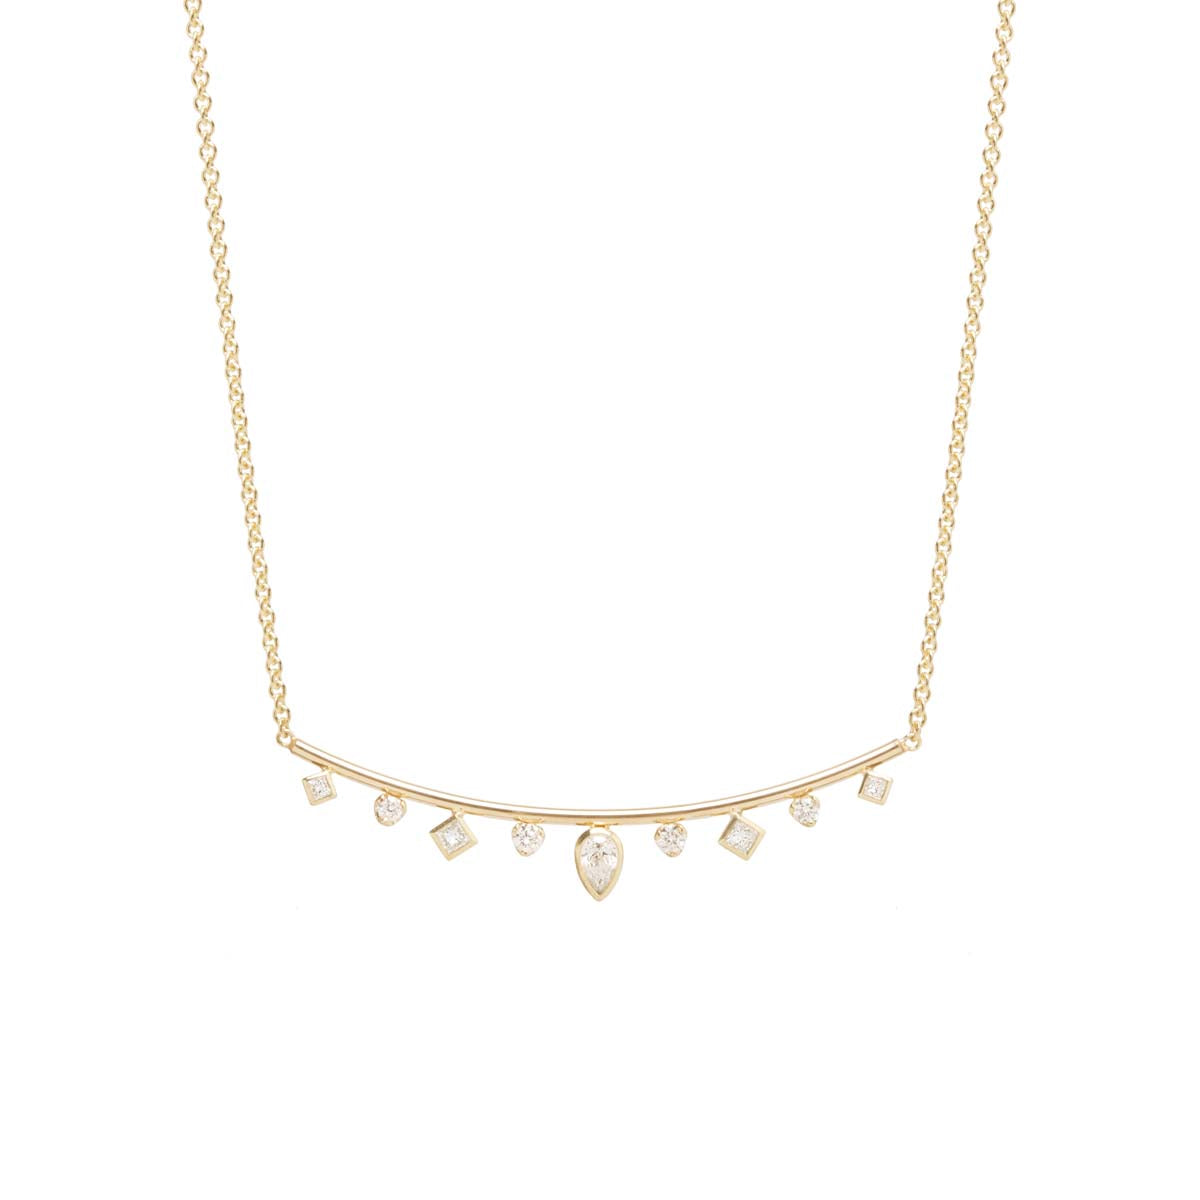 Zoë Chicco 14kt Yellow Gold Mixed Fancy Cut Diamond Curved Bar Necklace